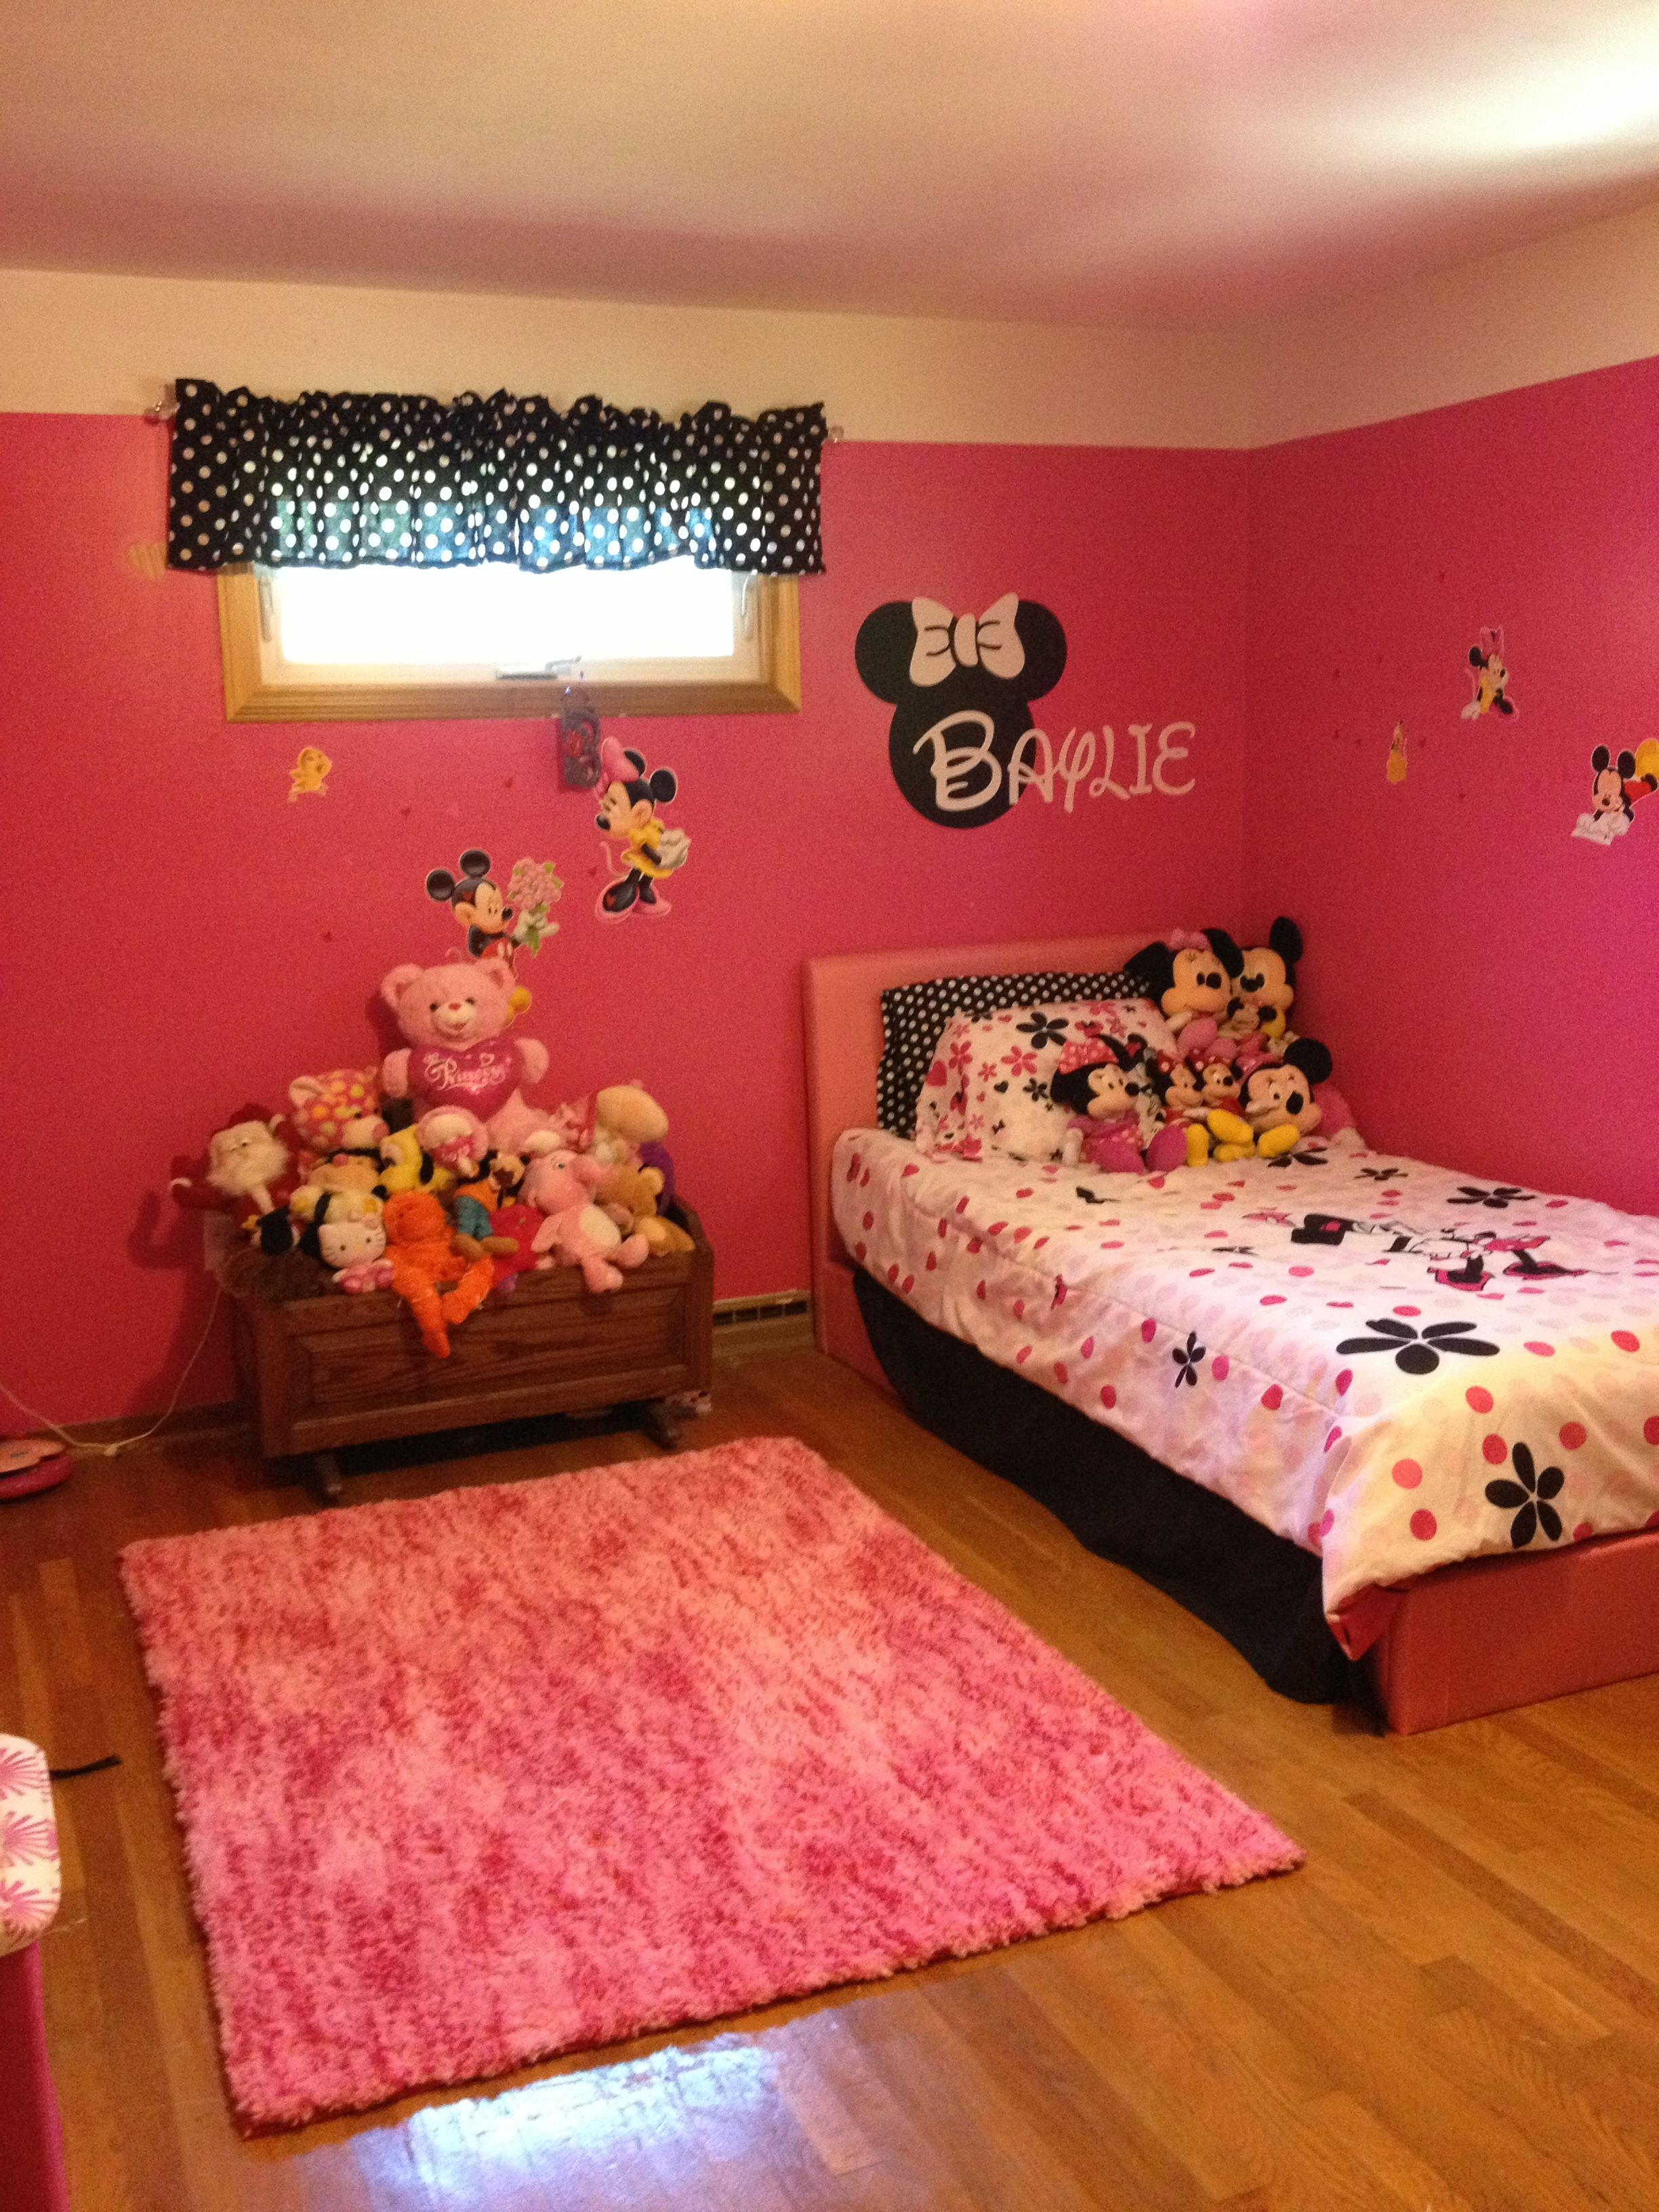 Minnie Mouse Bedroom  Baylies New Room  Minnie mouse